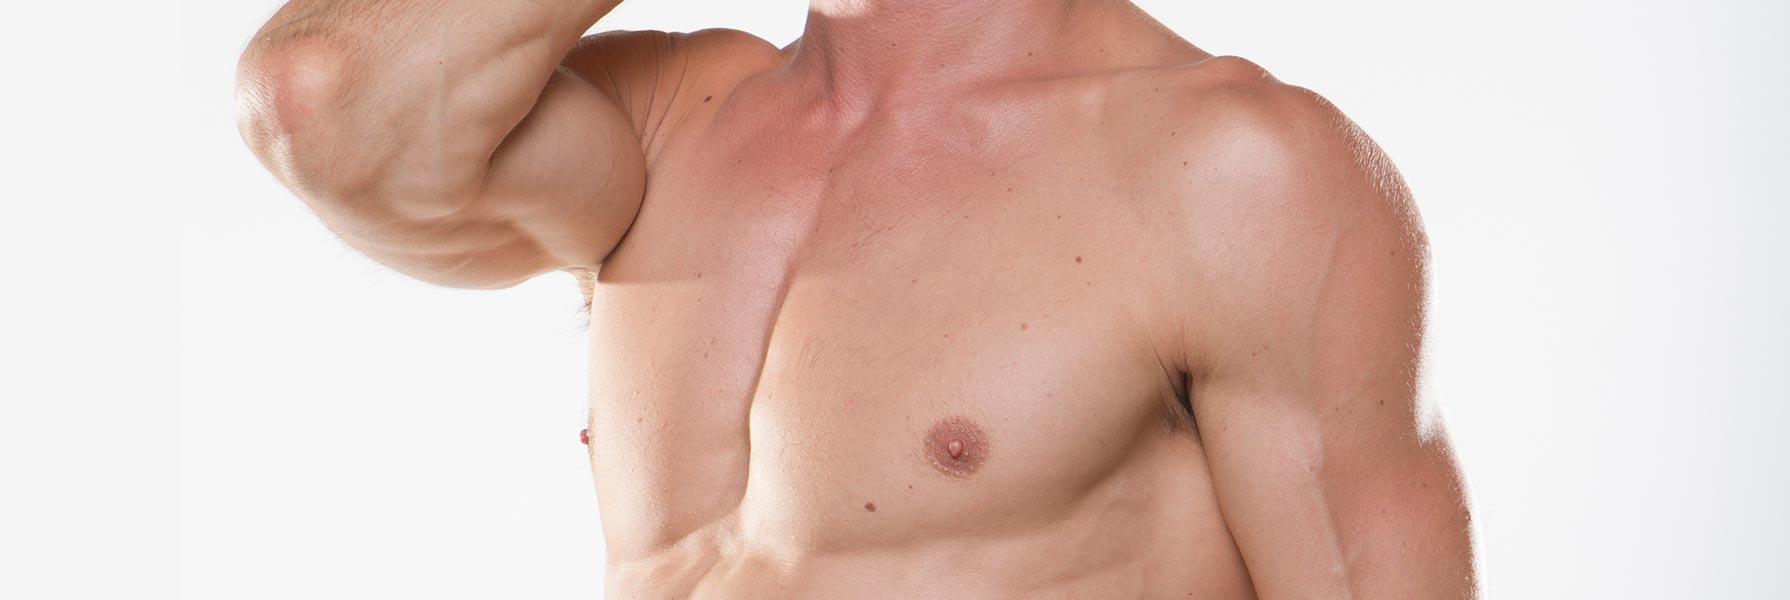 pectoral and bicep implants - image 001